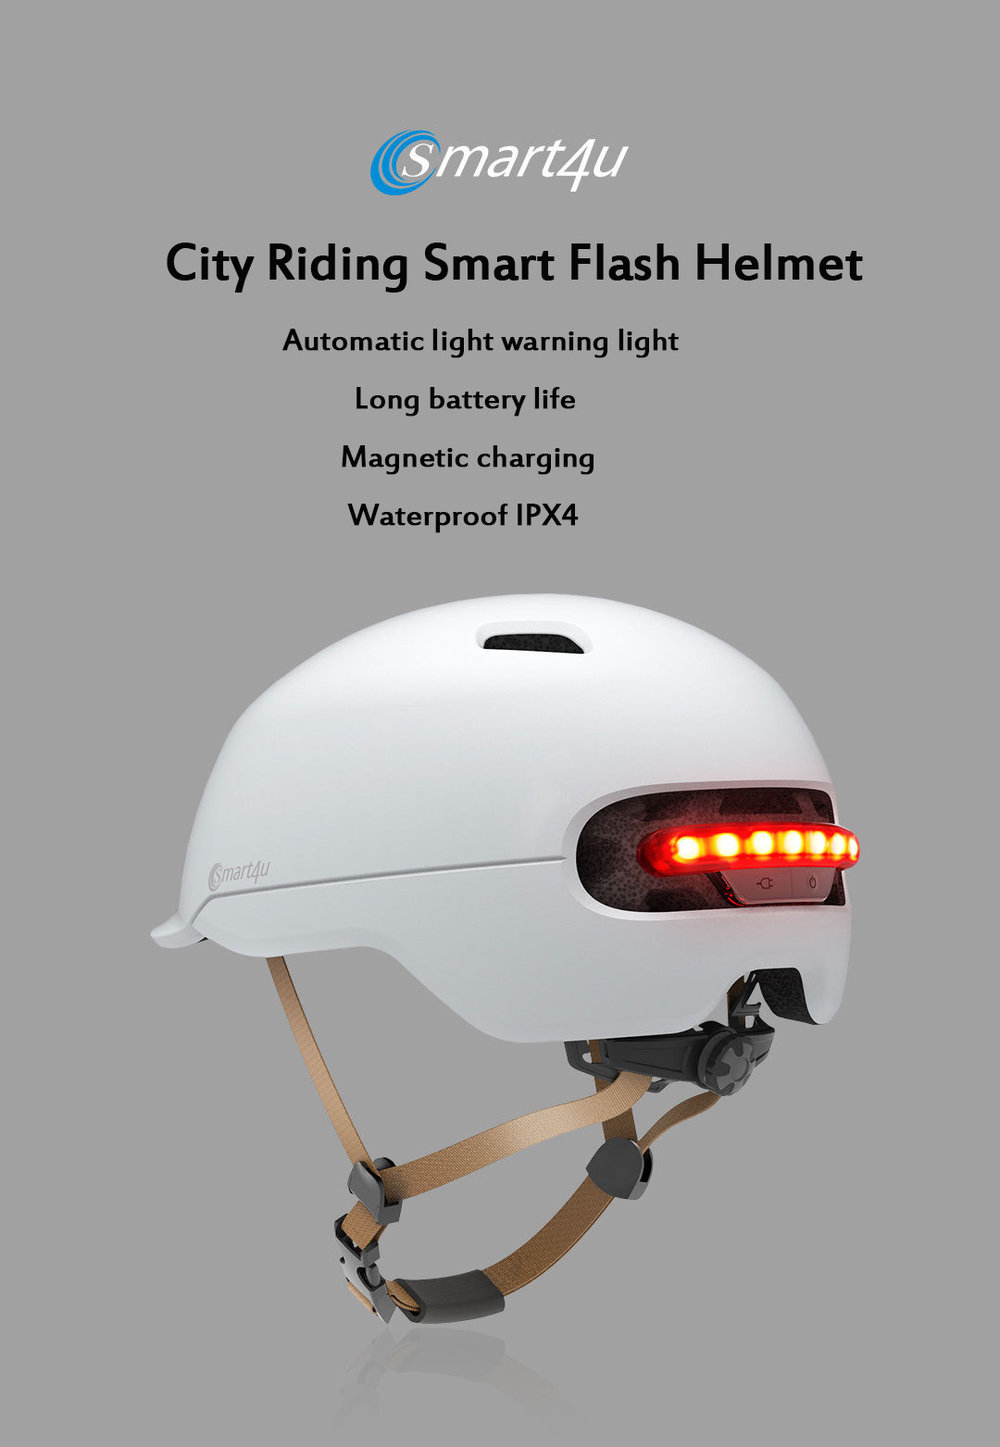 dc5daf0820d For your biking needs, a helmet is a must. Our newest product: The Smart4u  Brand